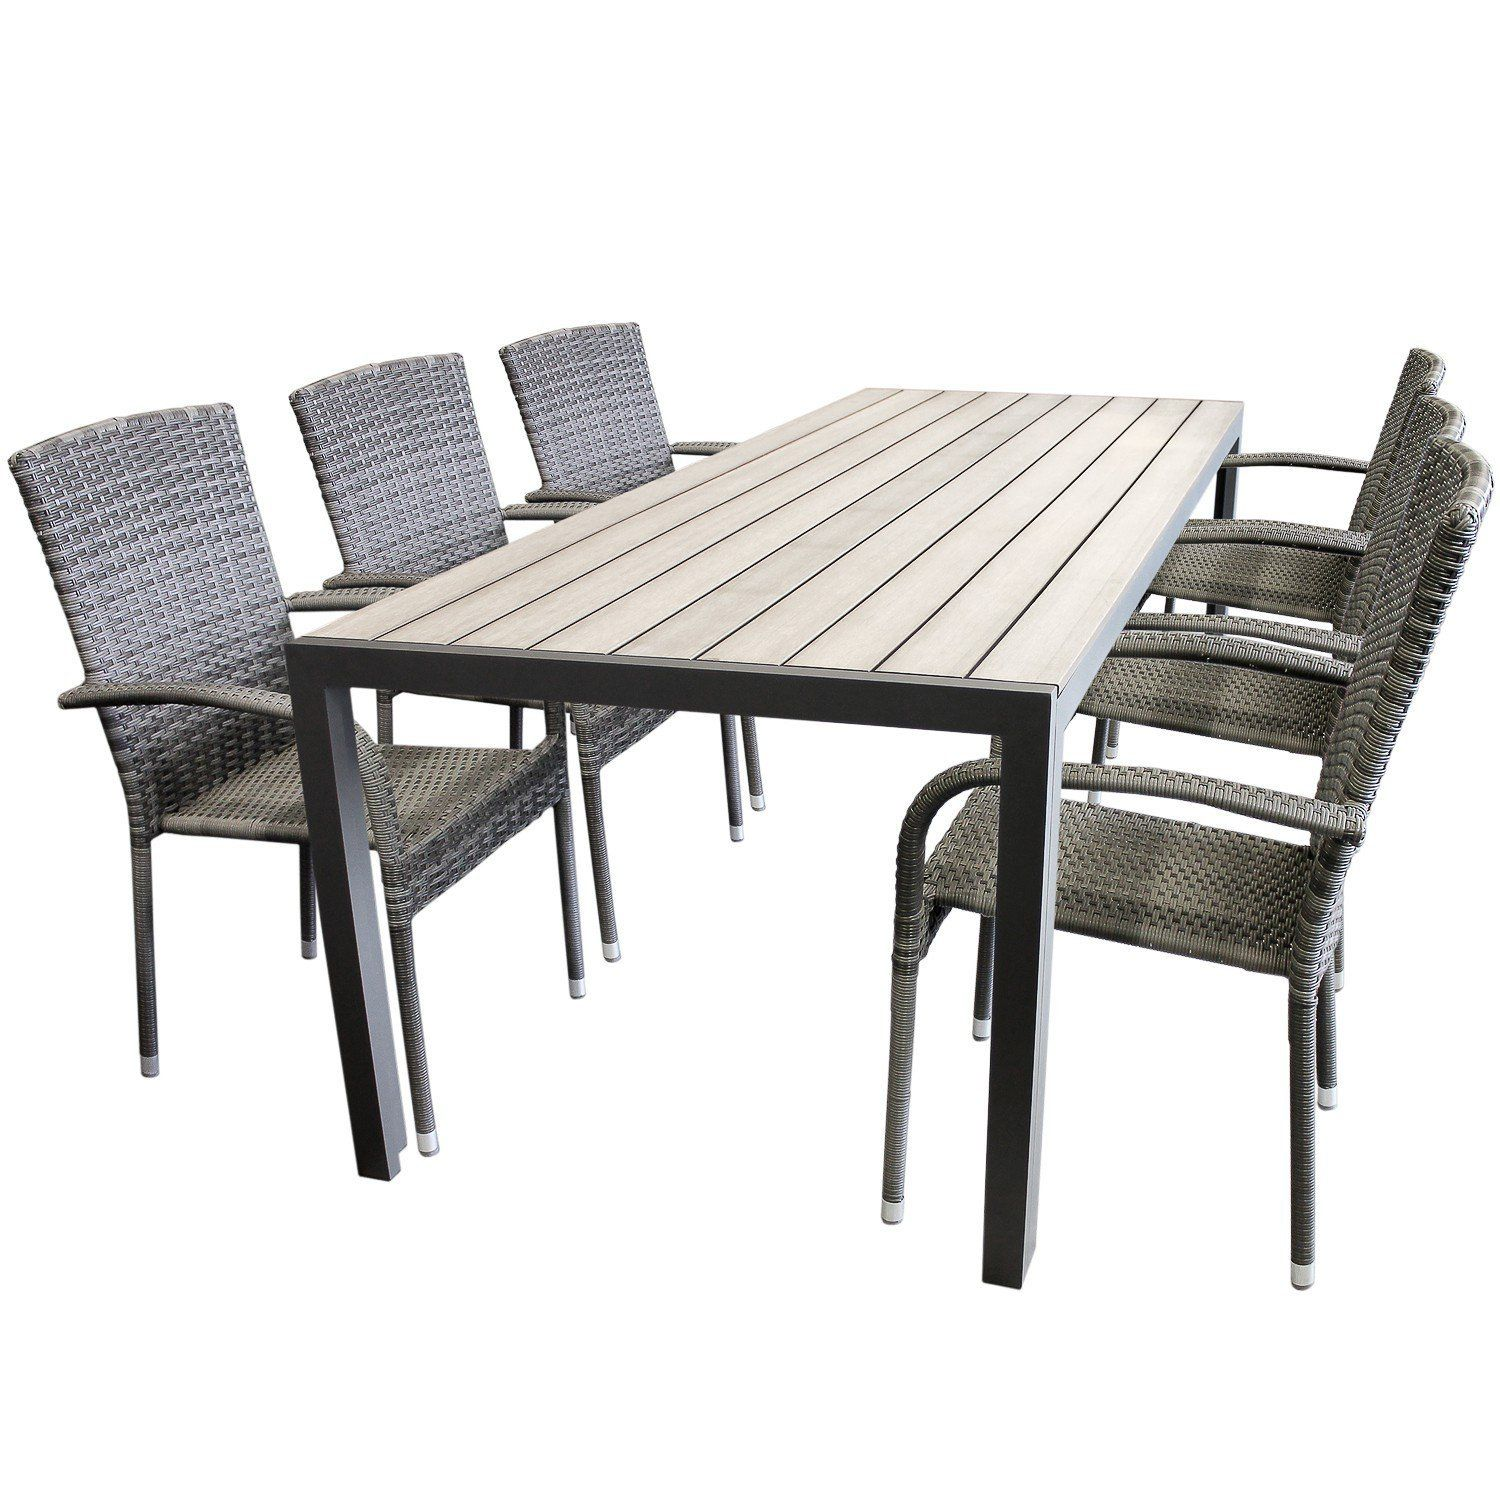 Gartentische Non Wood 268 All Amazon De Elegant 7tlg Garden Furniture Aluminum